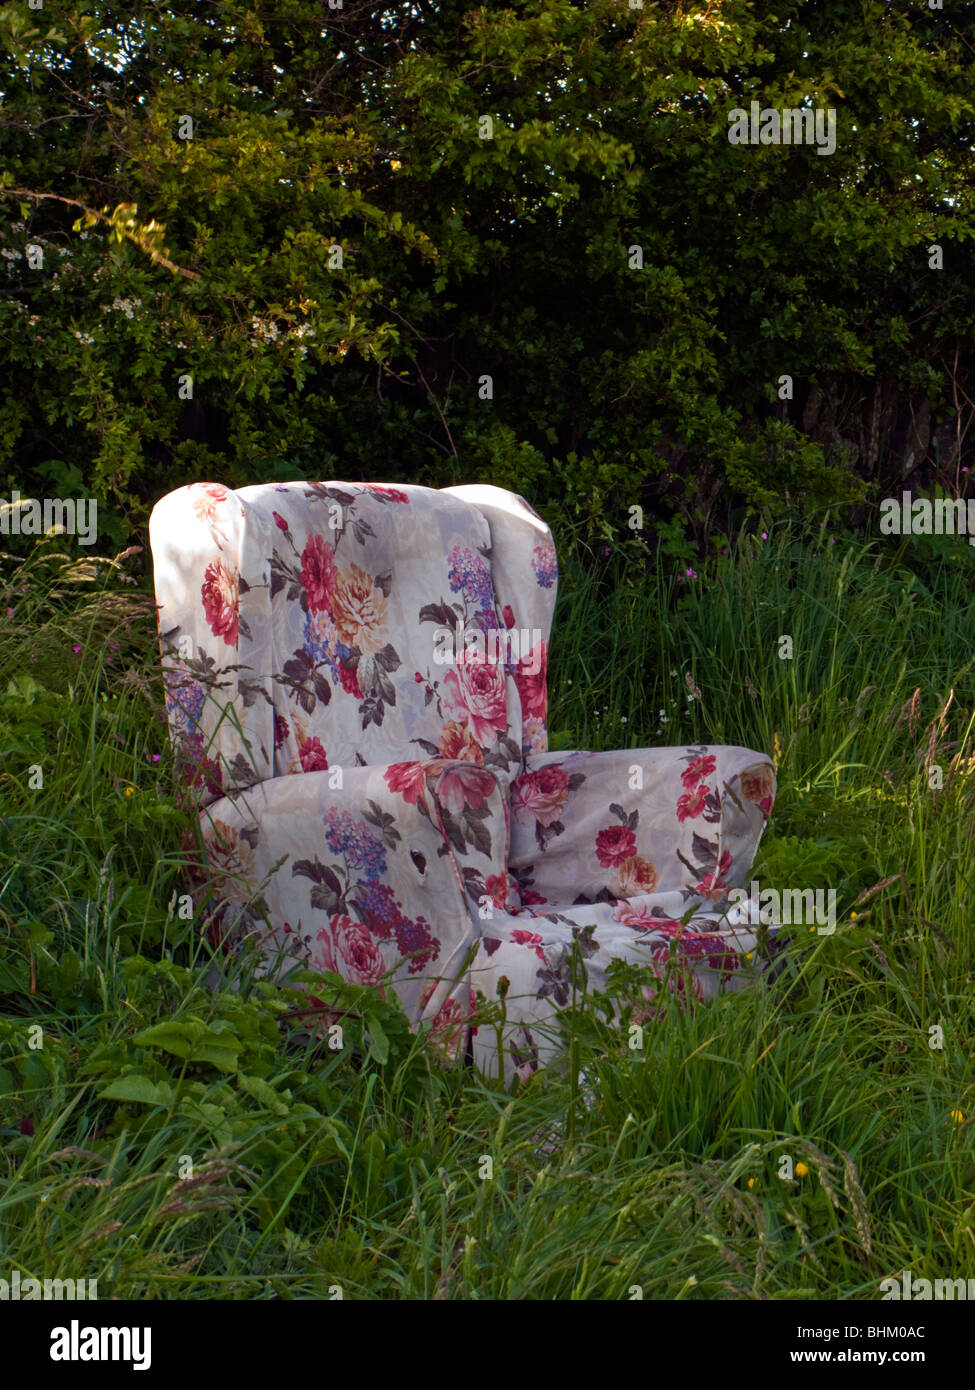 A Floral Upholstered Chair Dumped In A Field In North Devon.